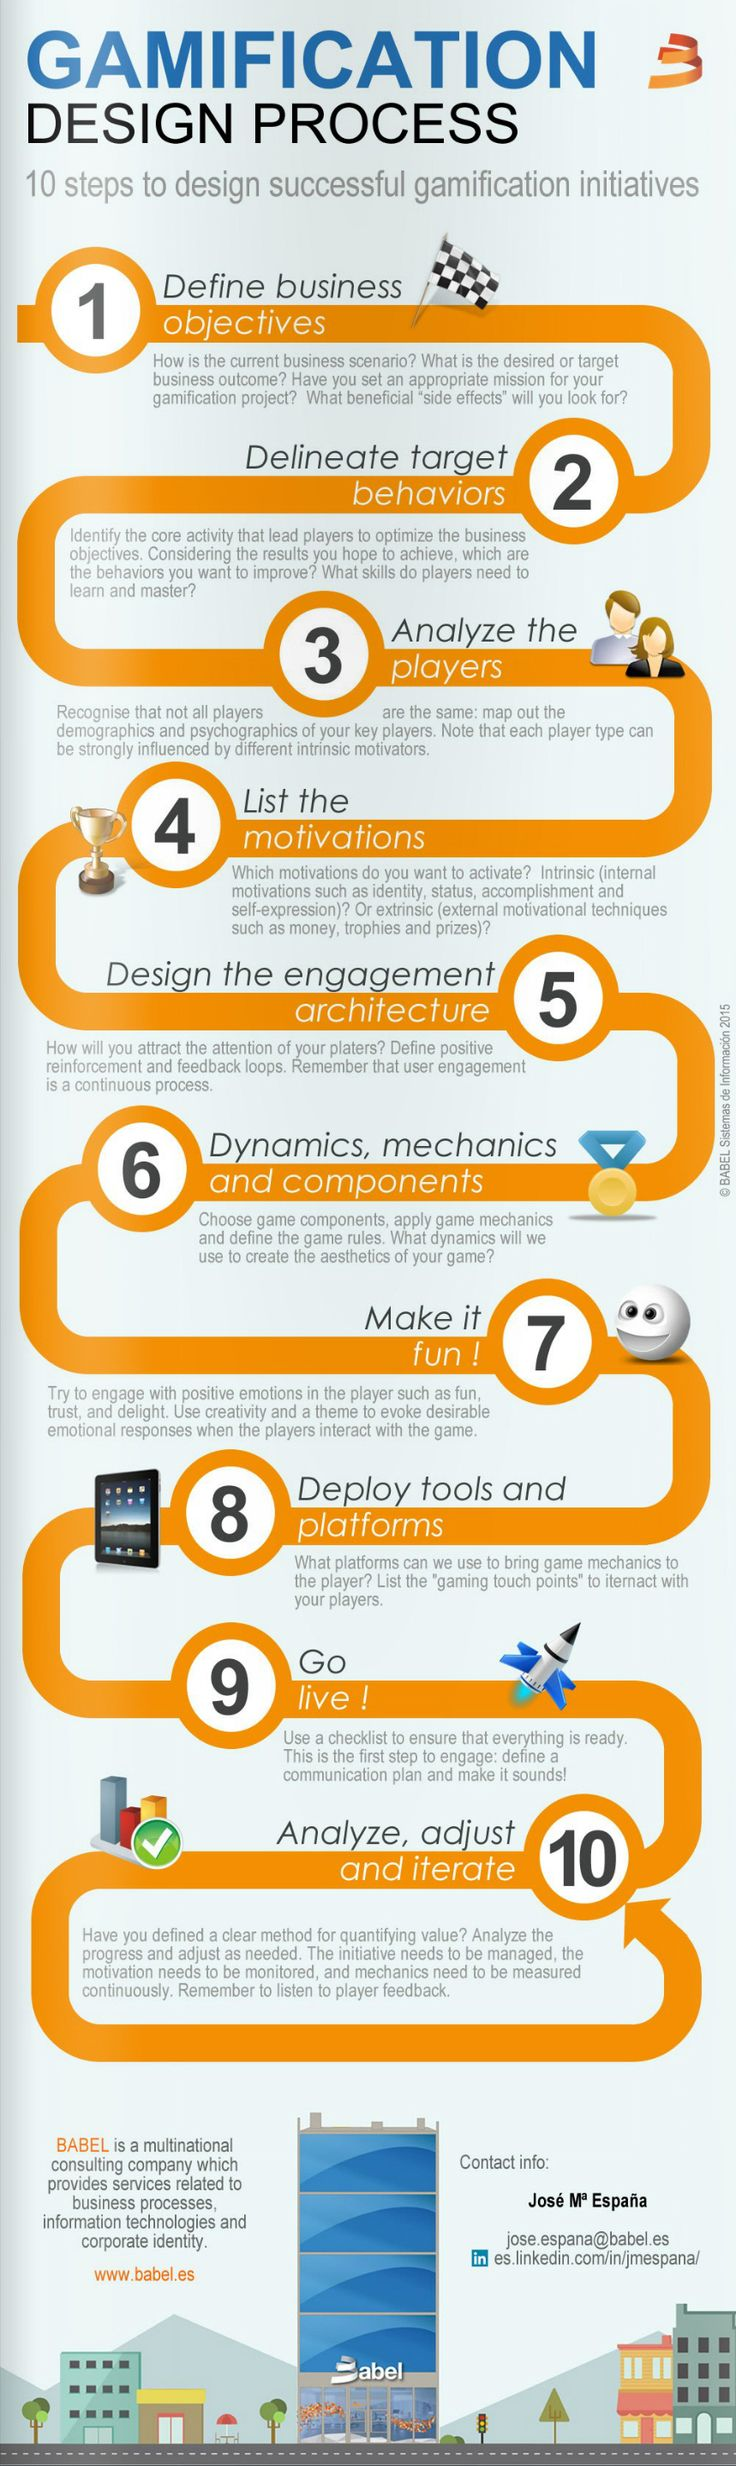 10 steps to design successful #gamification initiatives